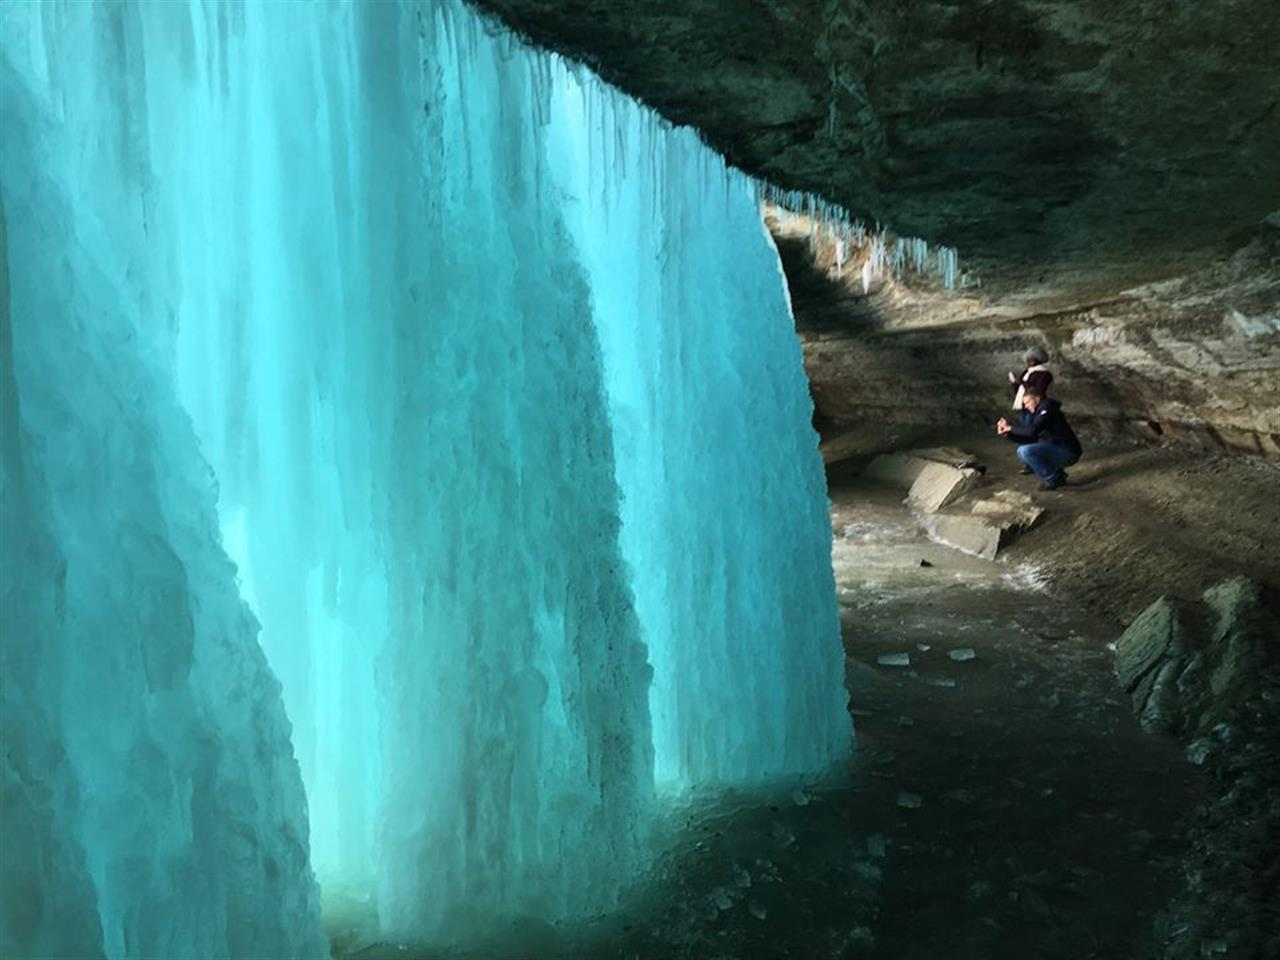 Behind the frozen waterfall - it's simply magical #Minnehaha #Minneapolis #LeadingRELocal #BairdWarner #Vacation